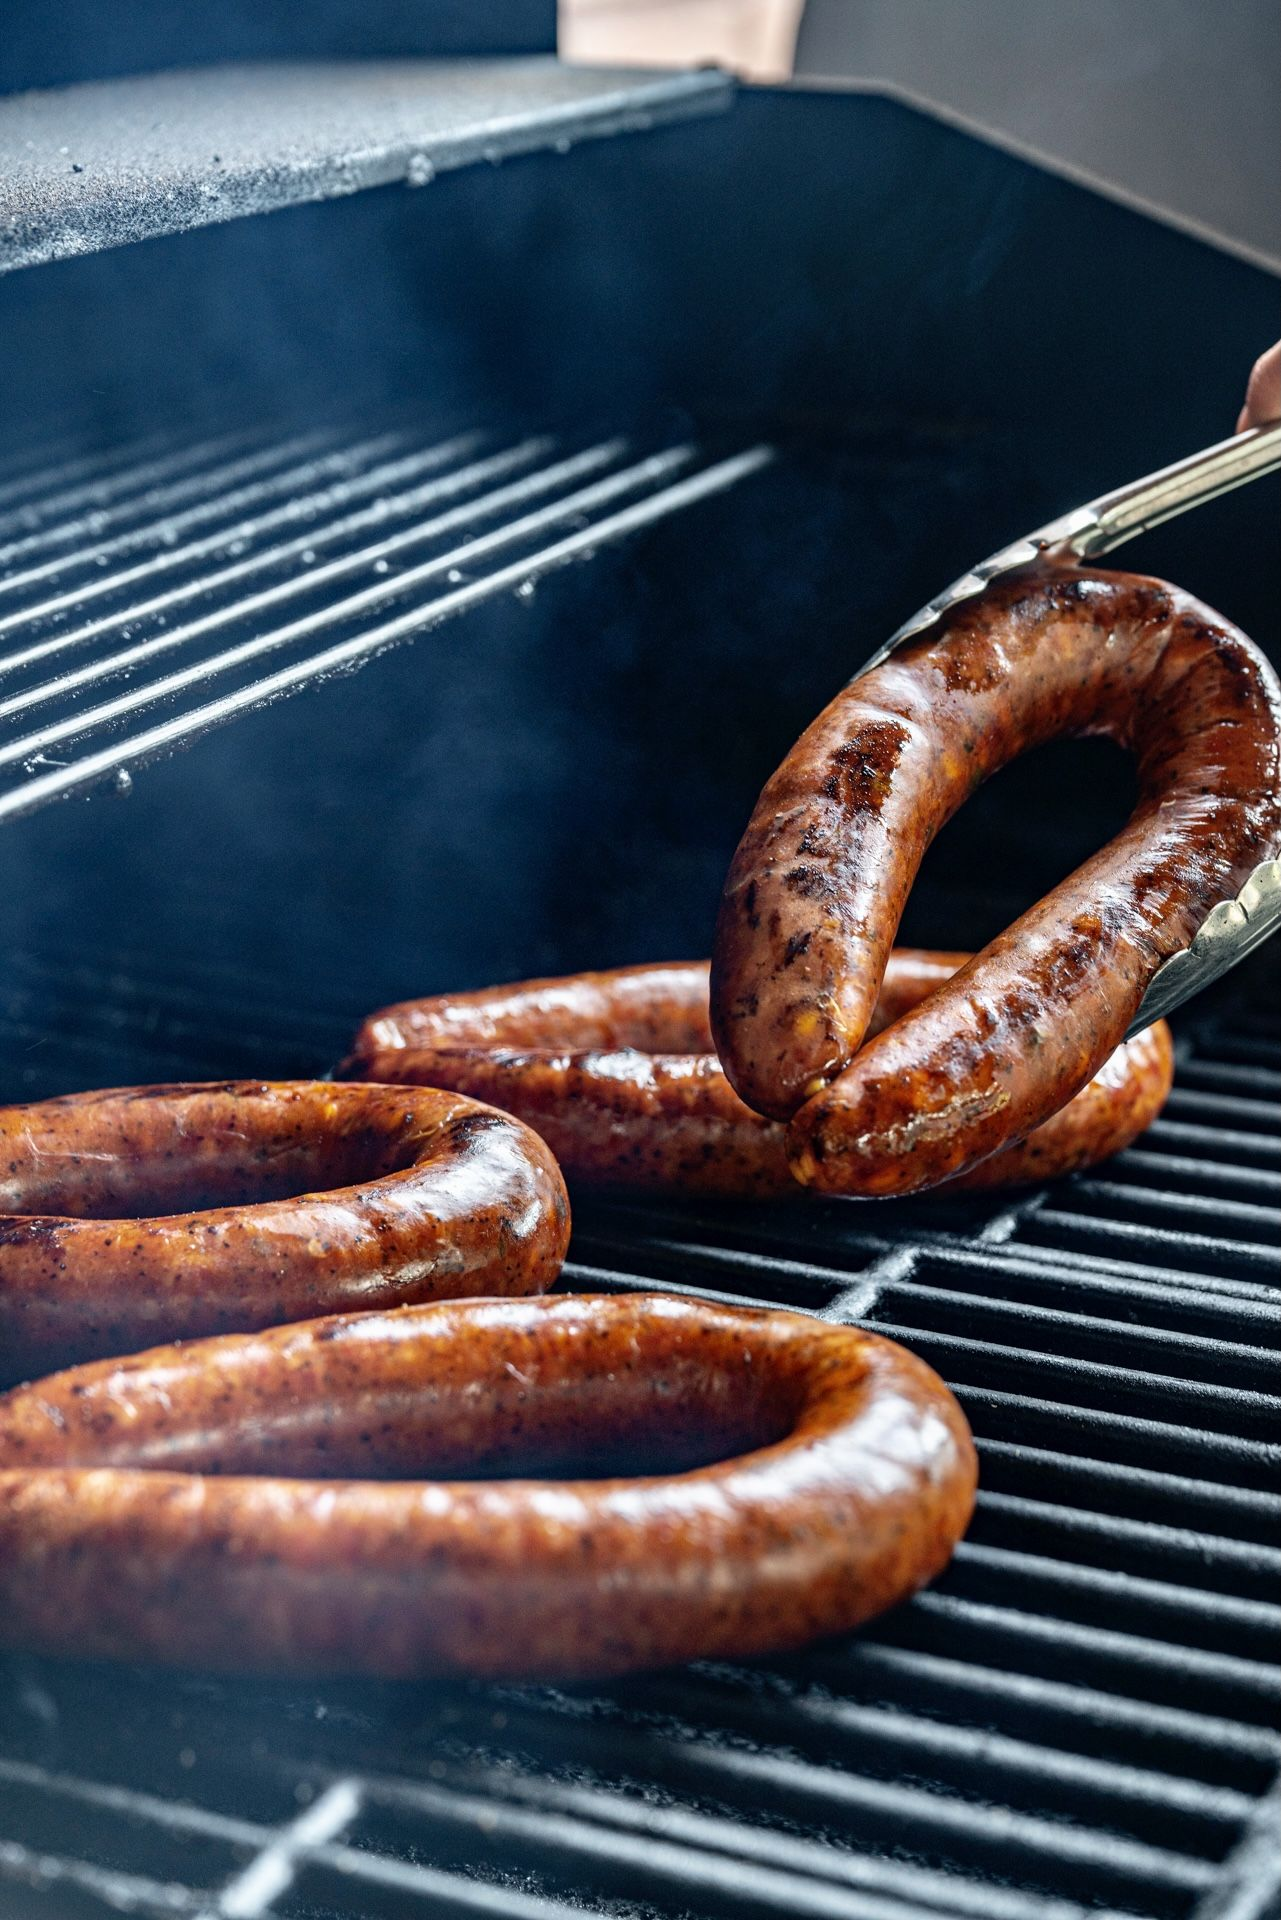 Celebrate Grilling Month with Barbecue At Home by Dickey's New Craft Sausages